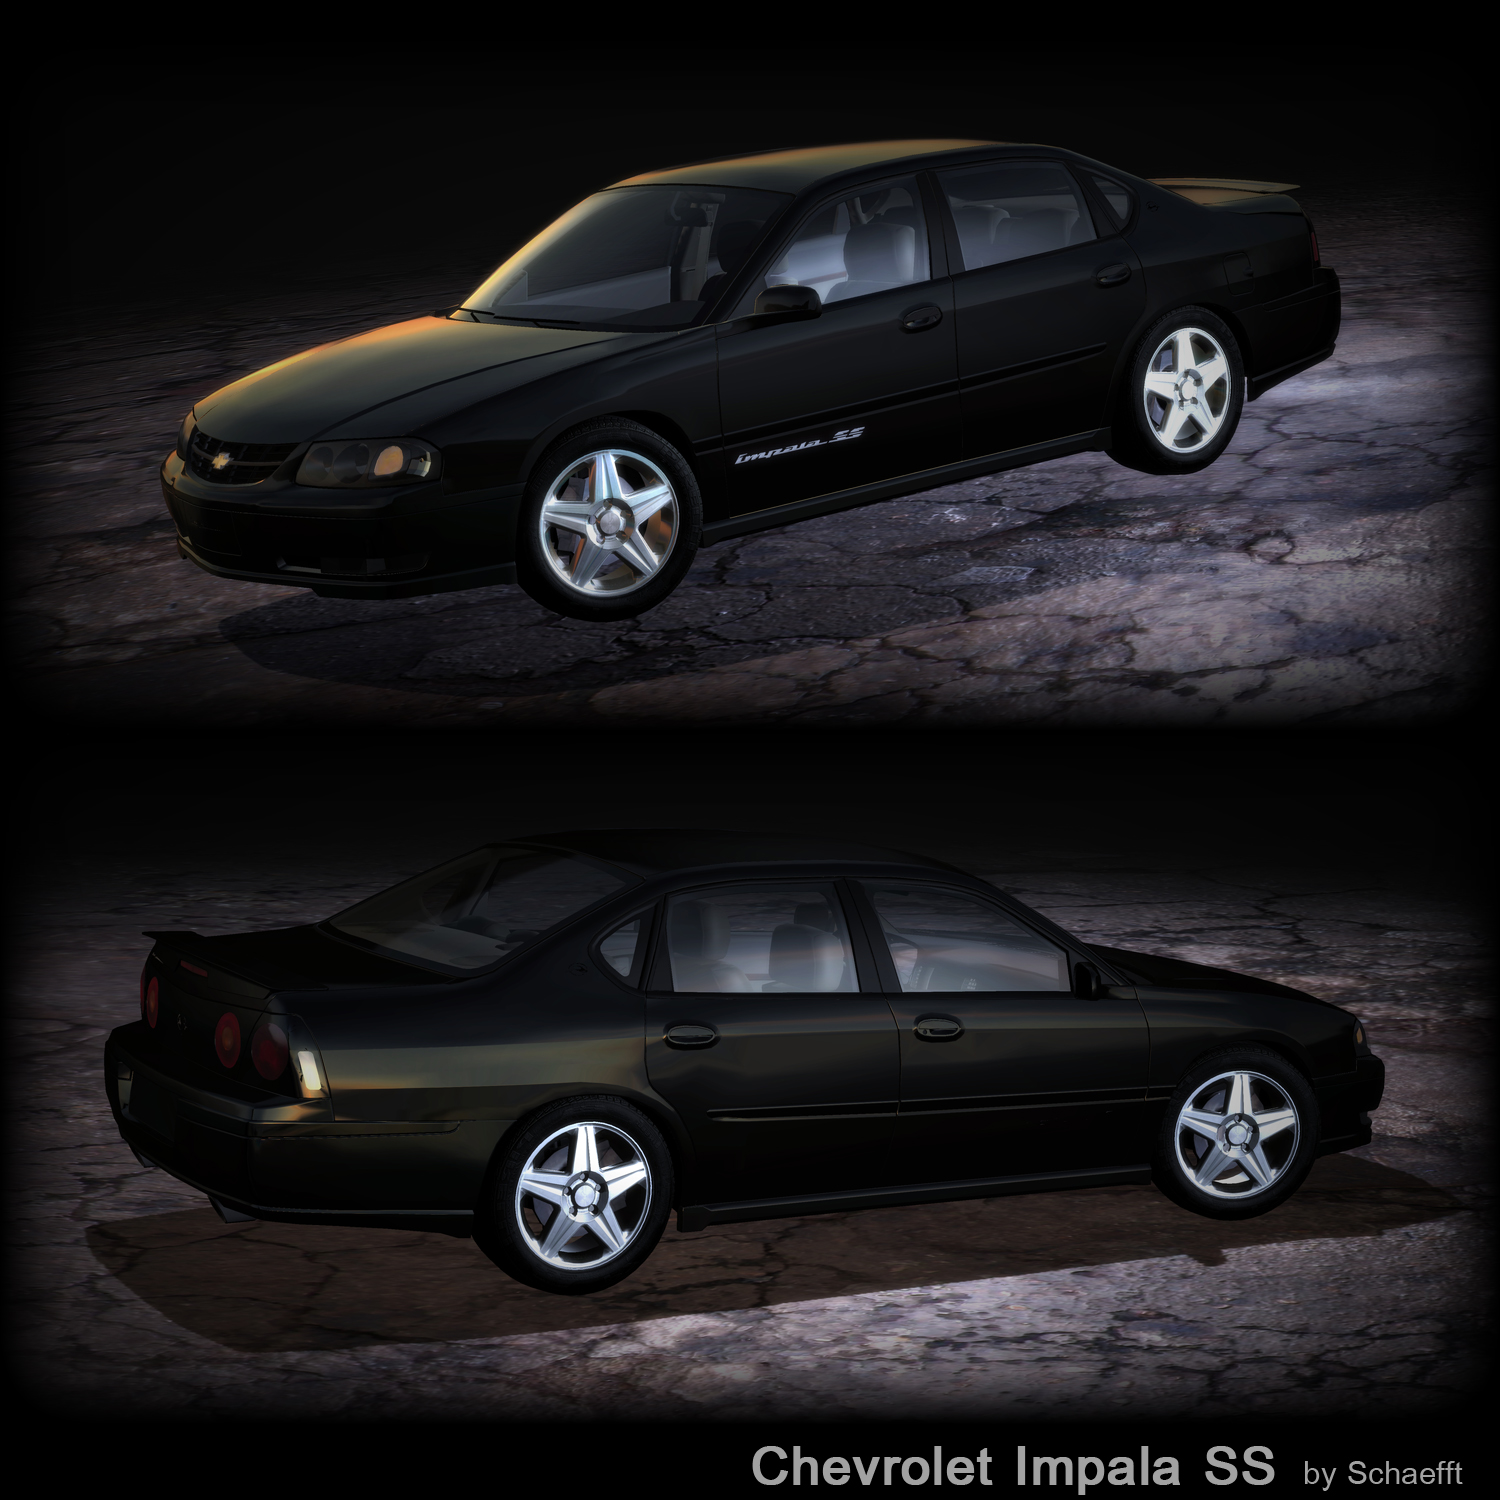 chevy impala ss by schaefft on deviantart. Black Bedroom Furniture Sets. Home Design Ideas